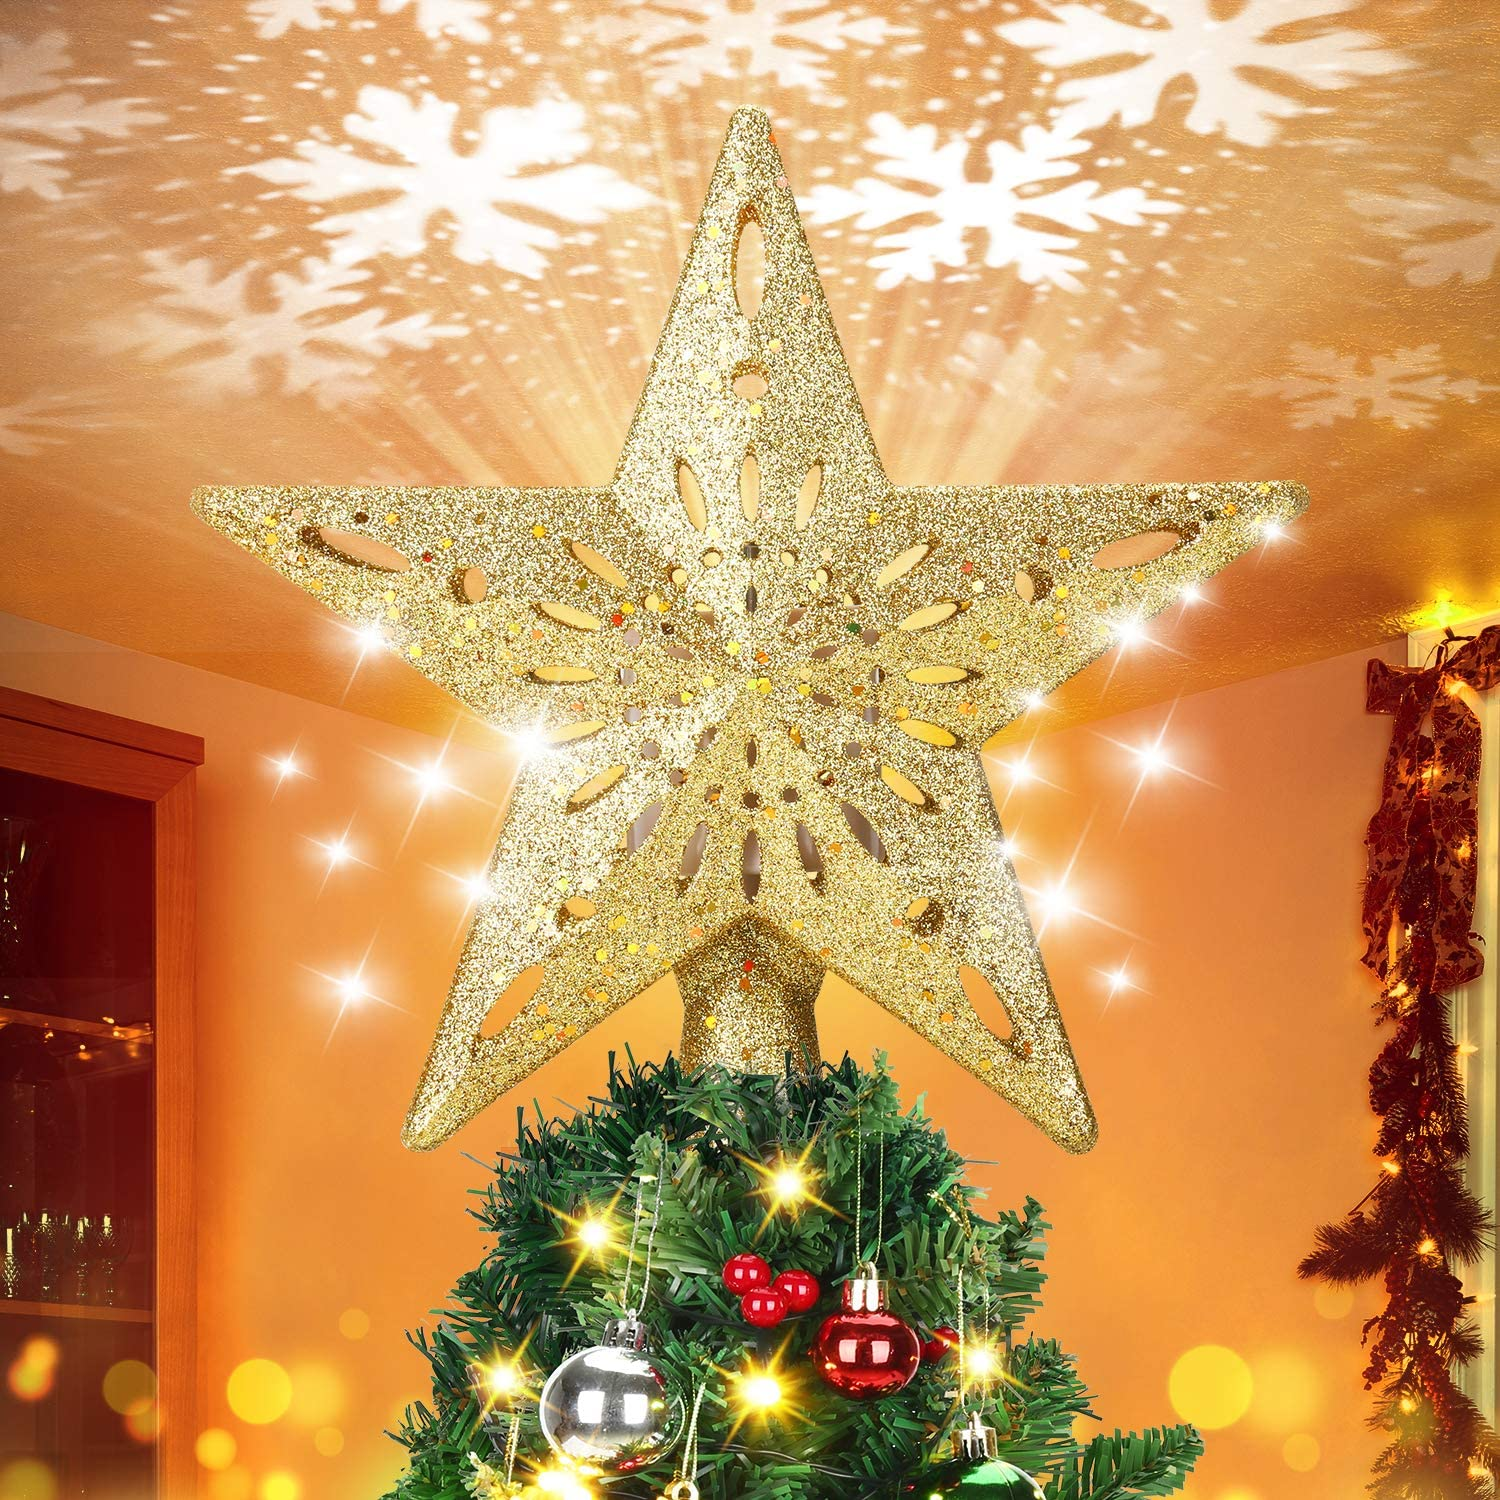 ELOVER Christmas Free shipping anywhere in the nation Tree Oklahoma City Mall Topper with Rotating Snowflake LED Project